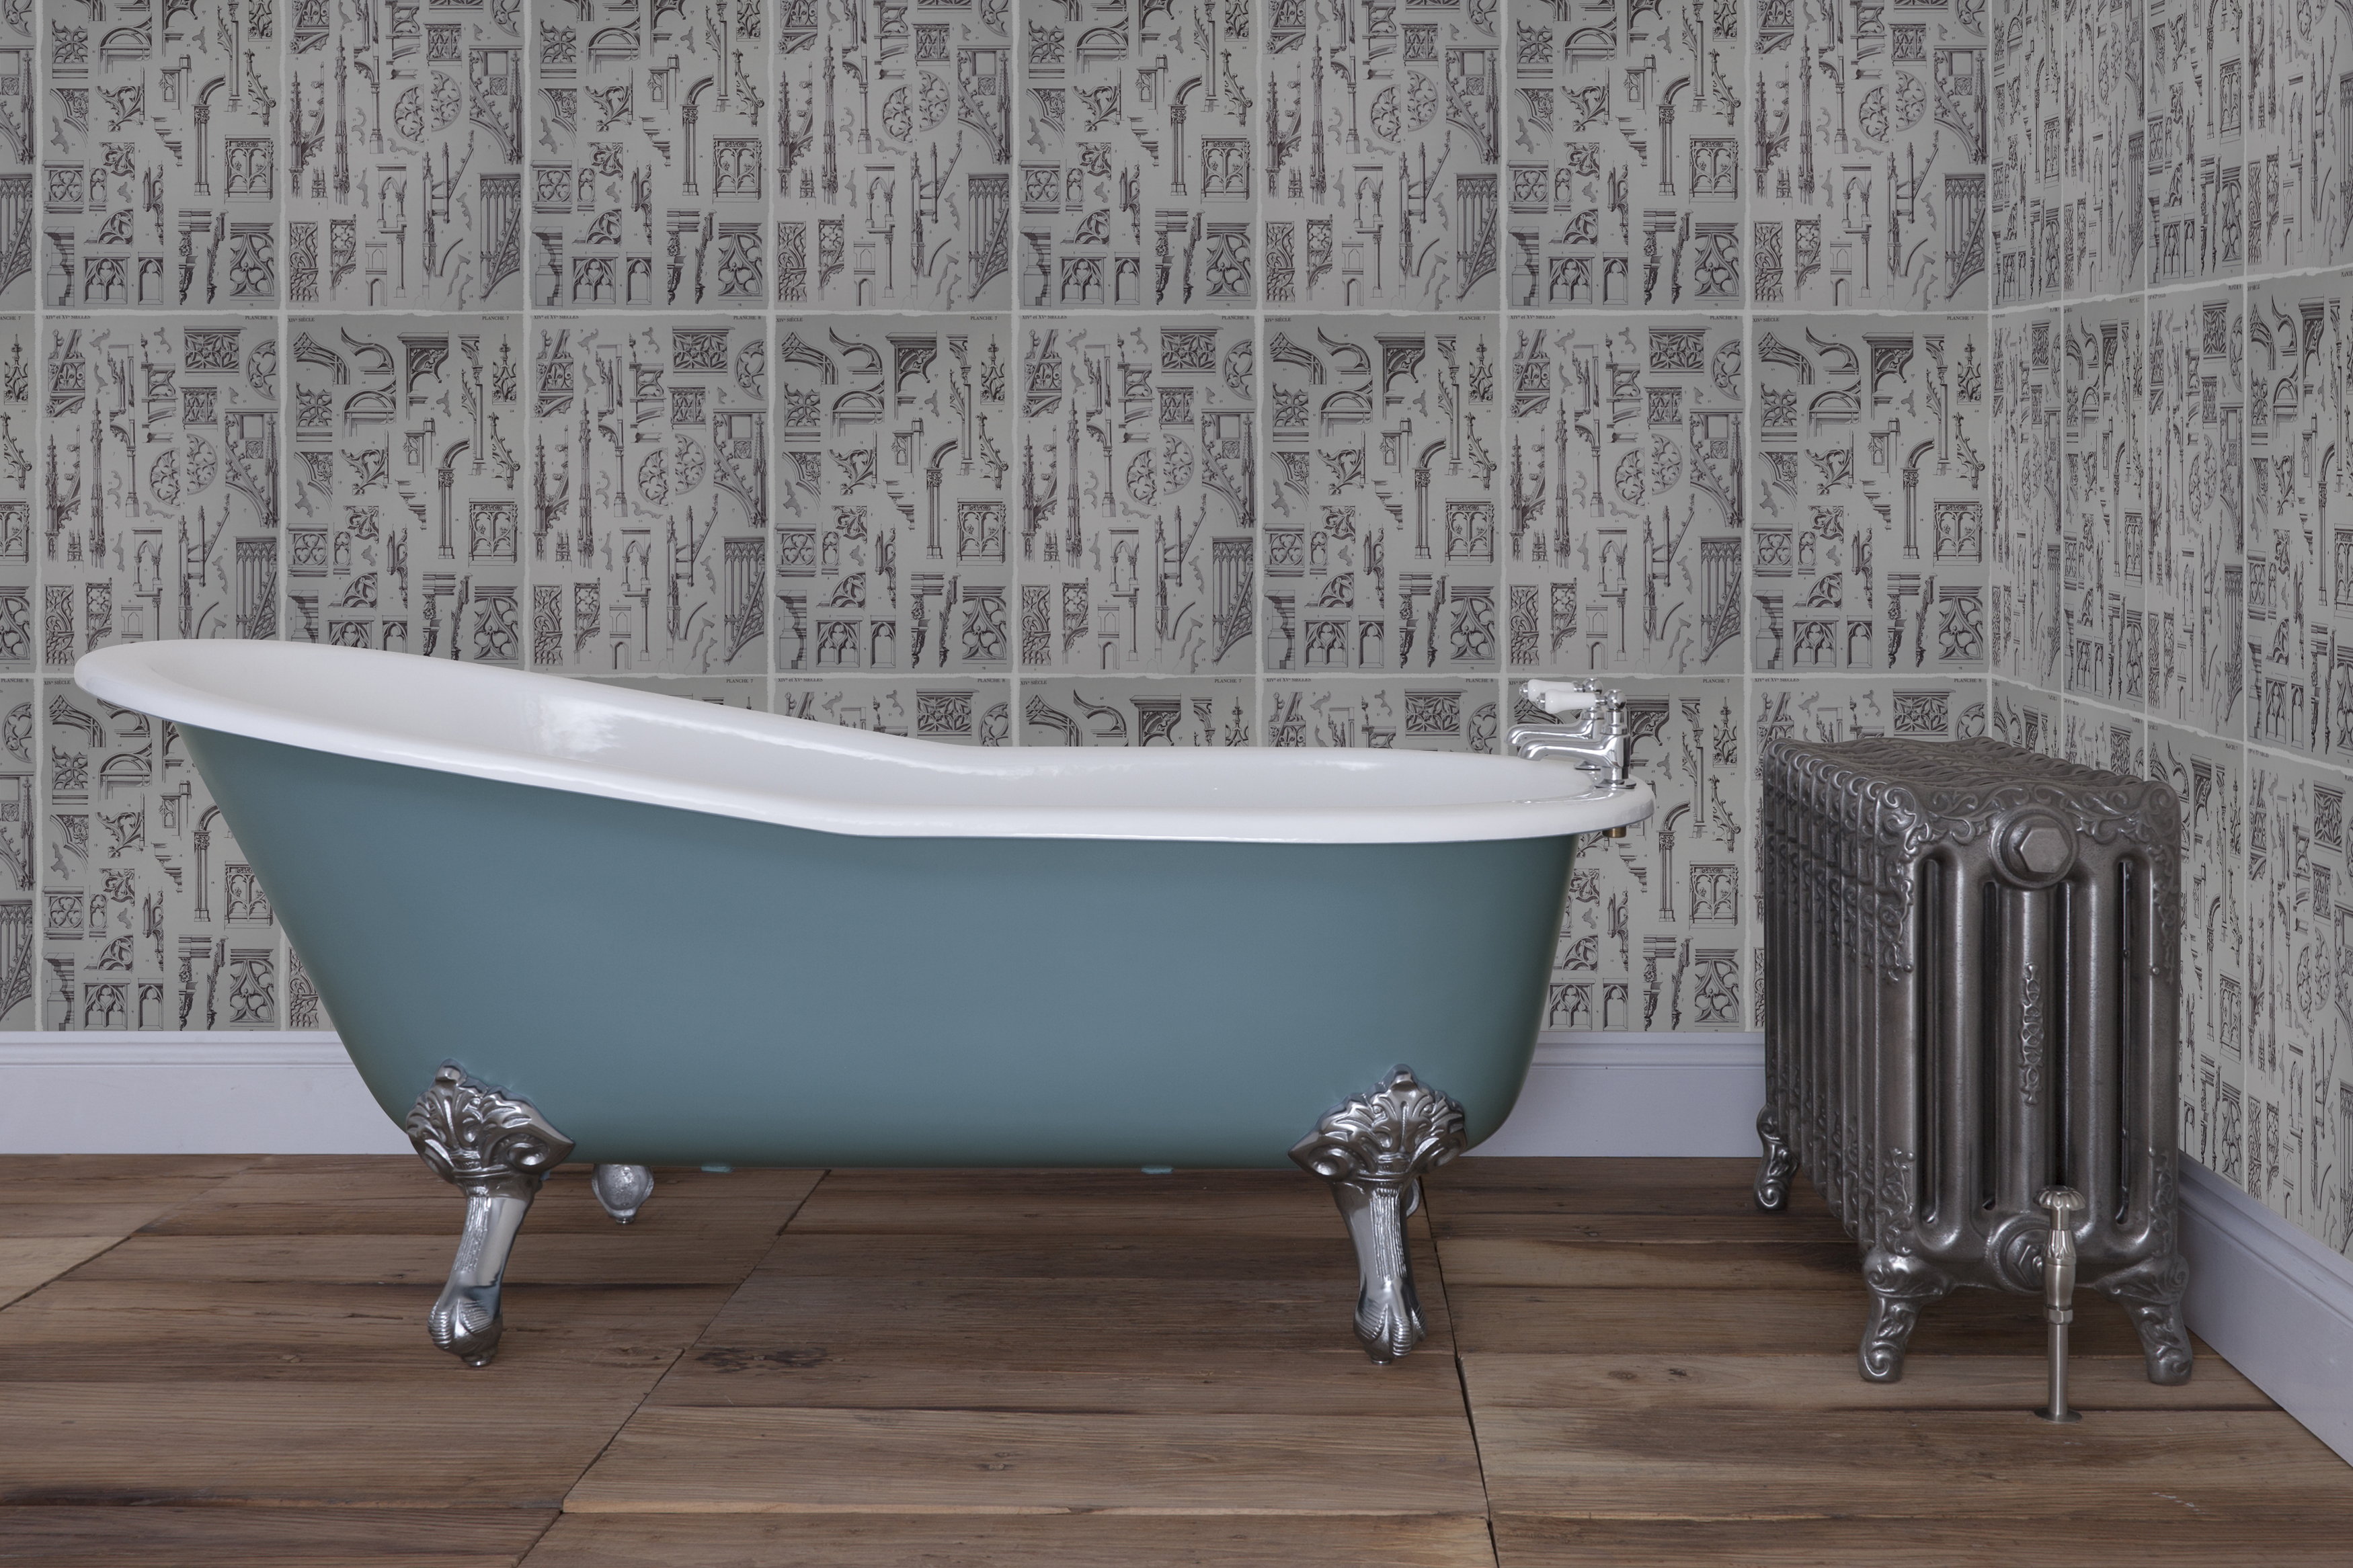 Beaulieu cast iron bath from period home style